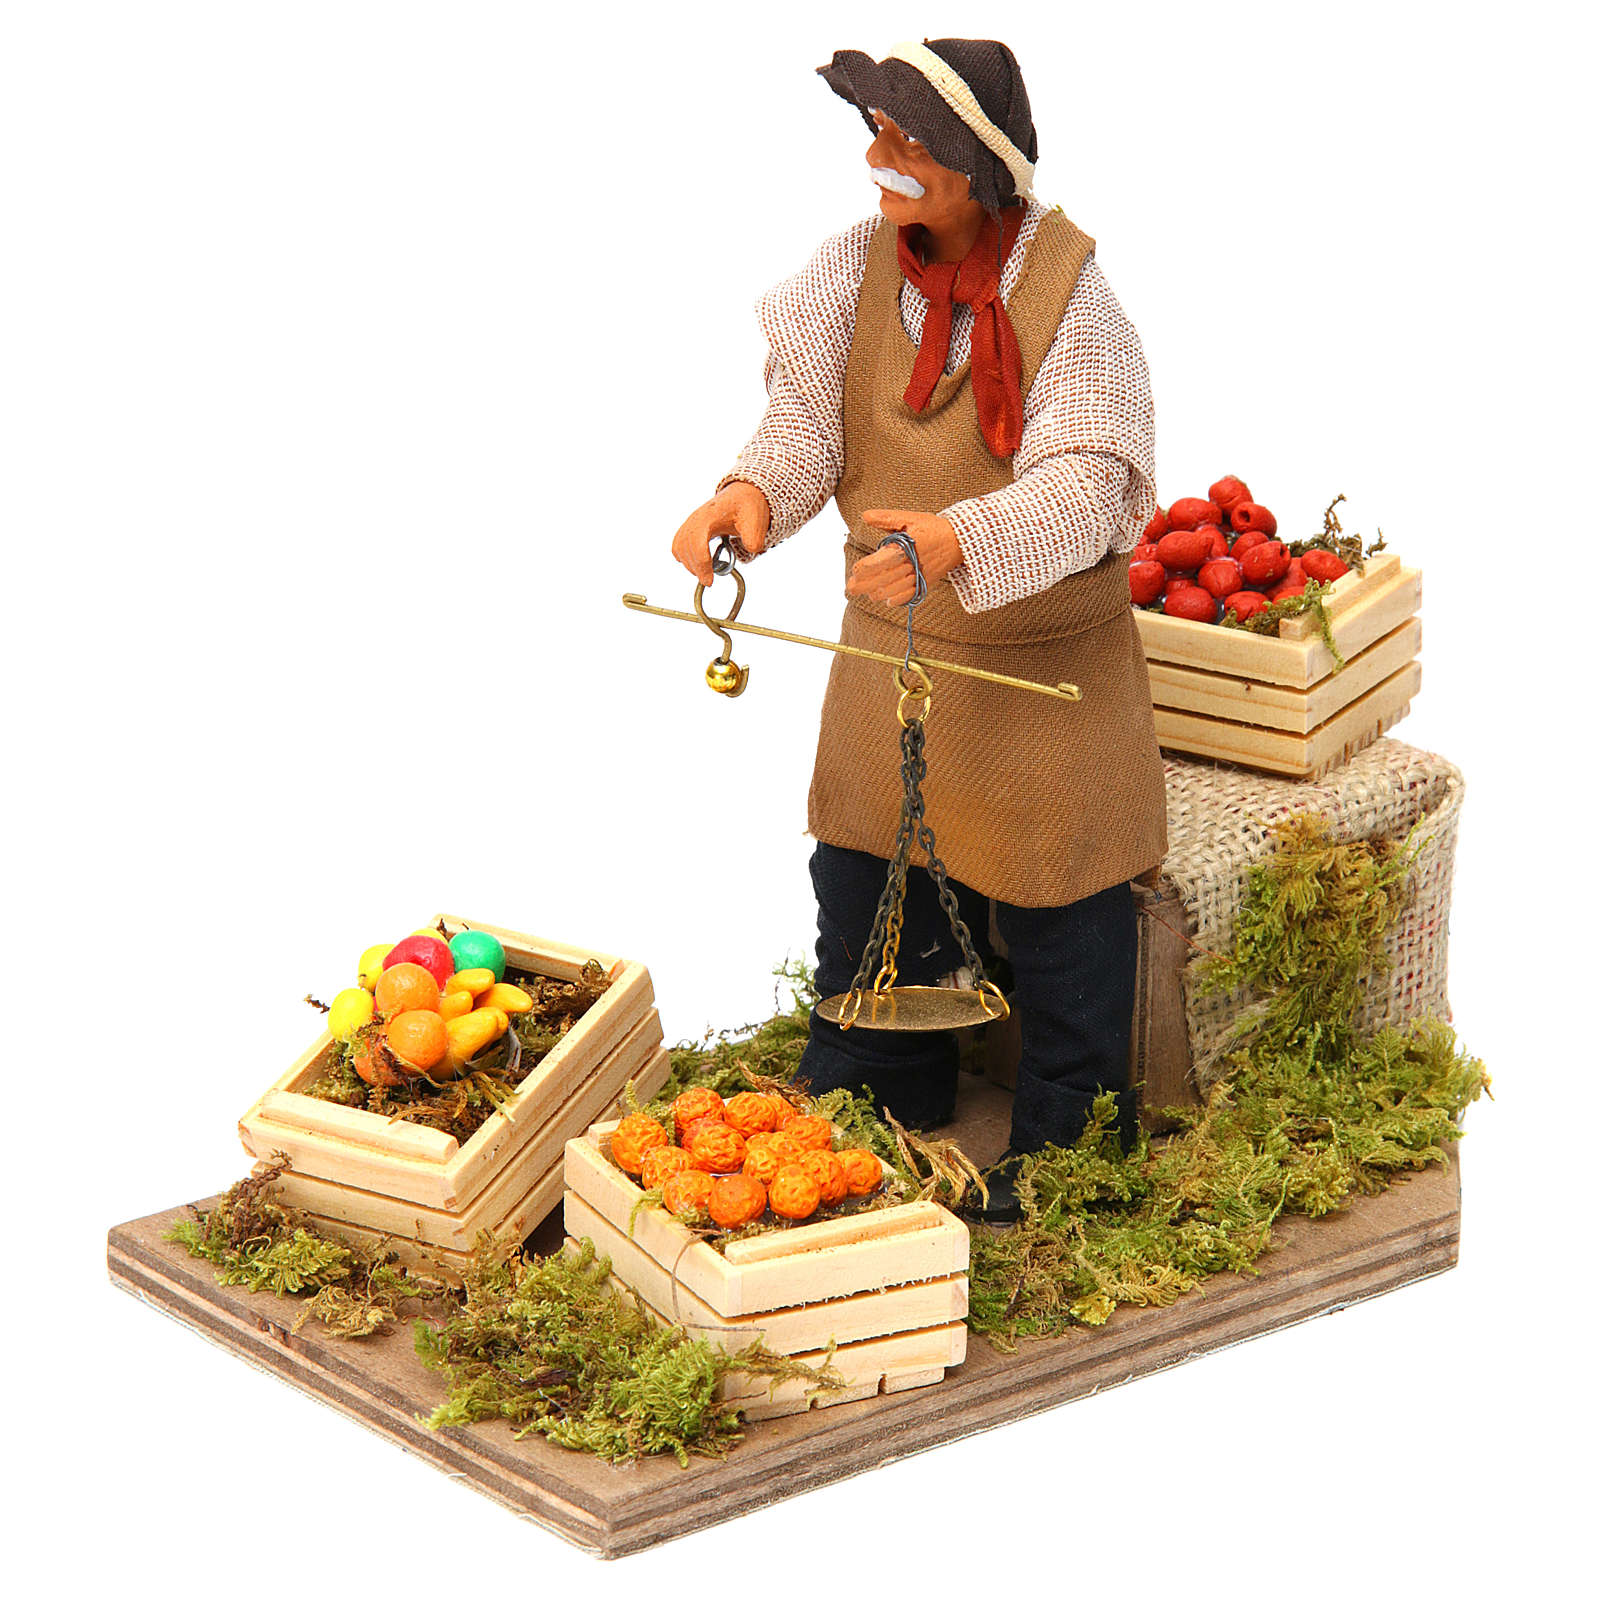 Animated Nativity scene figurine, greengrocer with scales 14 cm 4